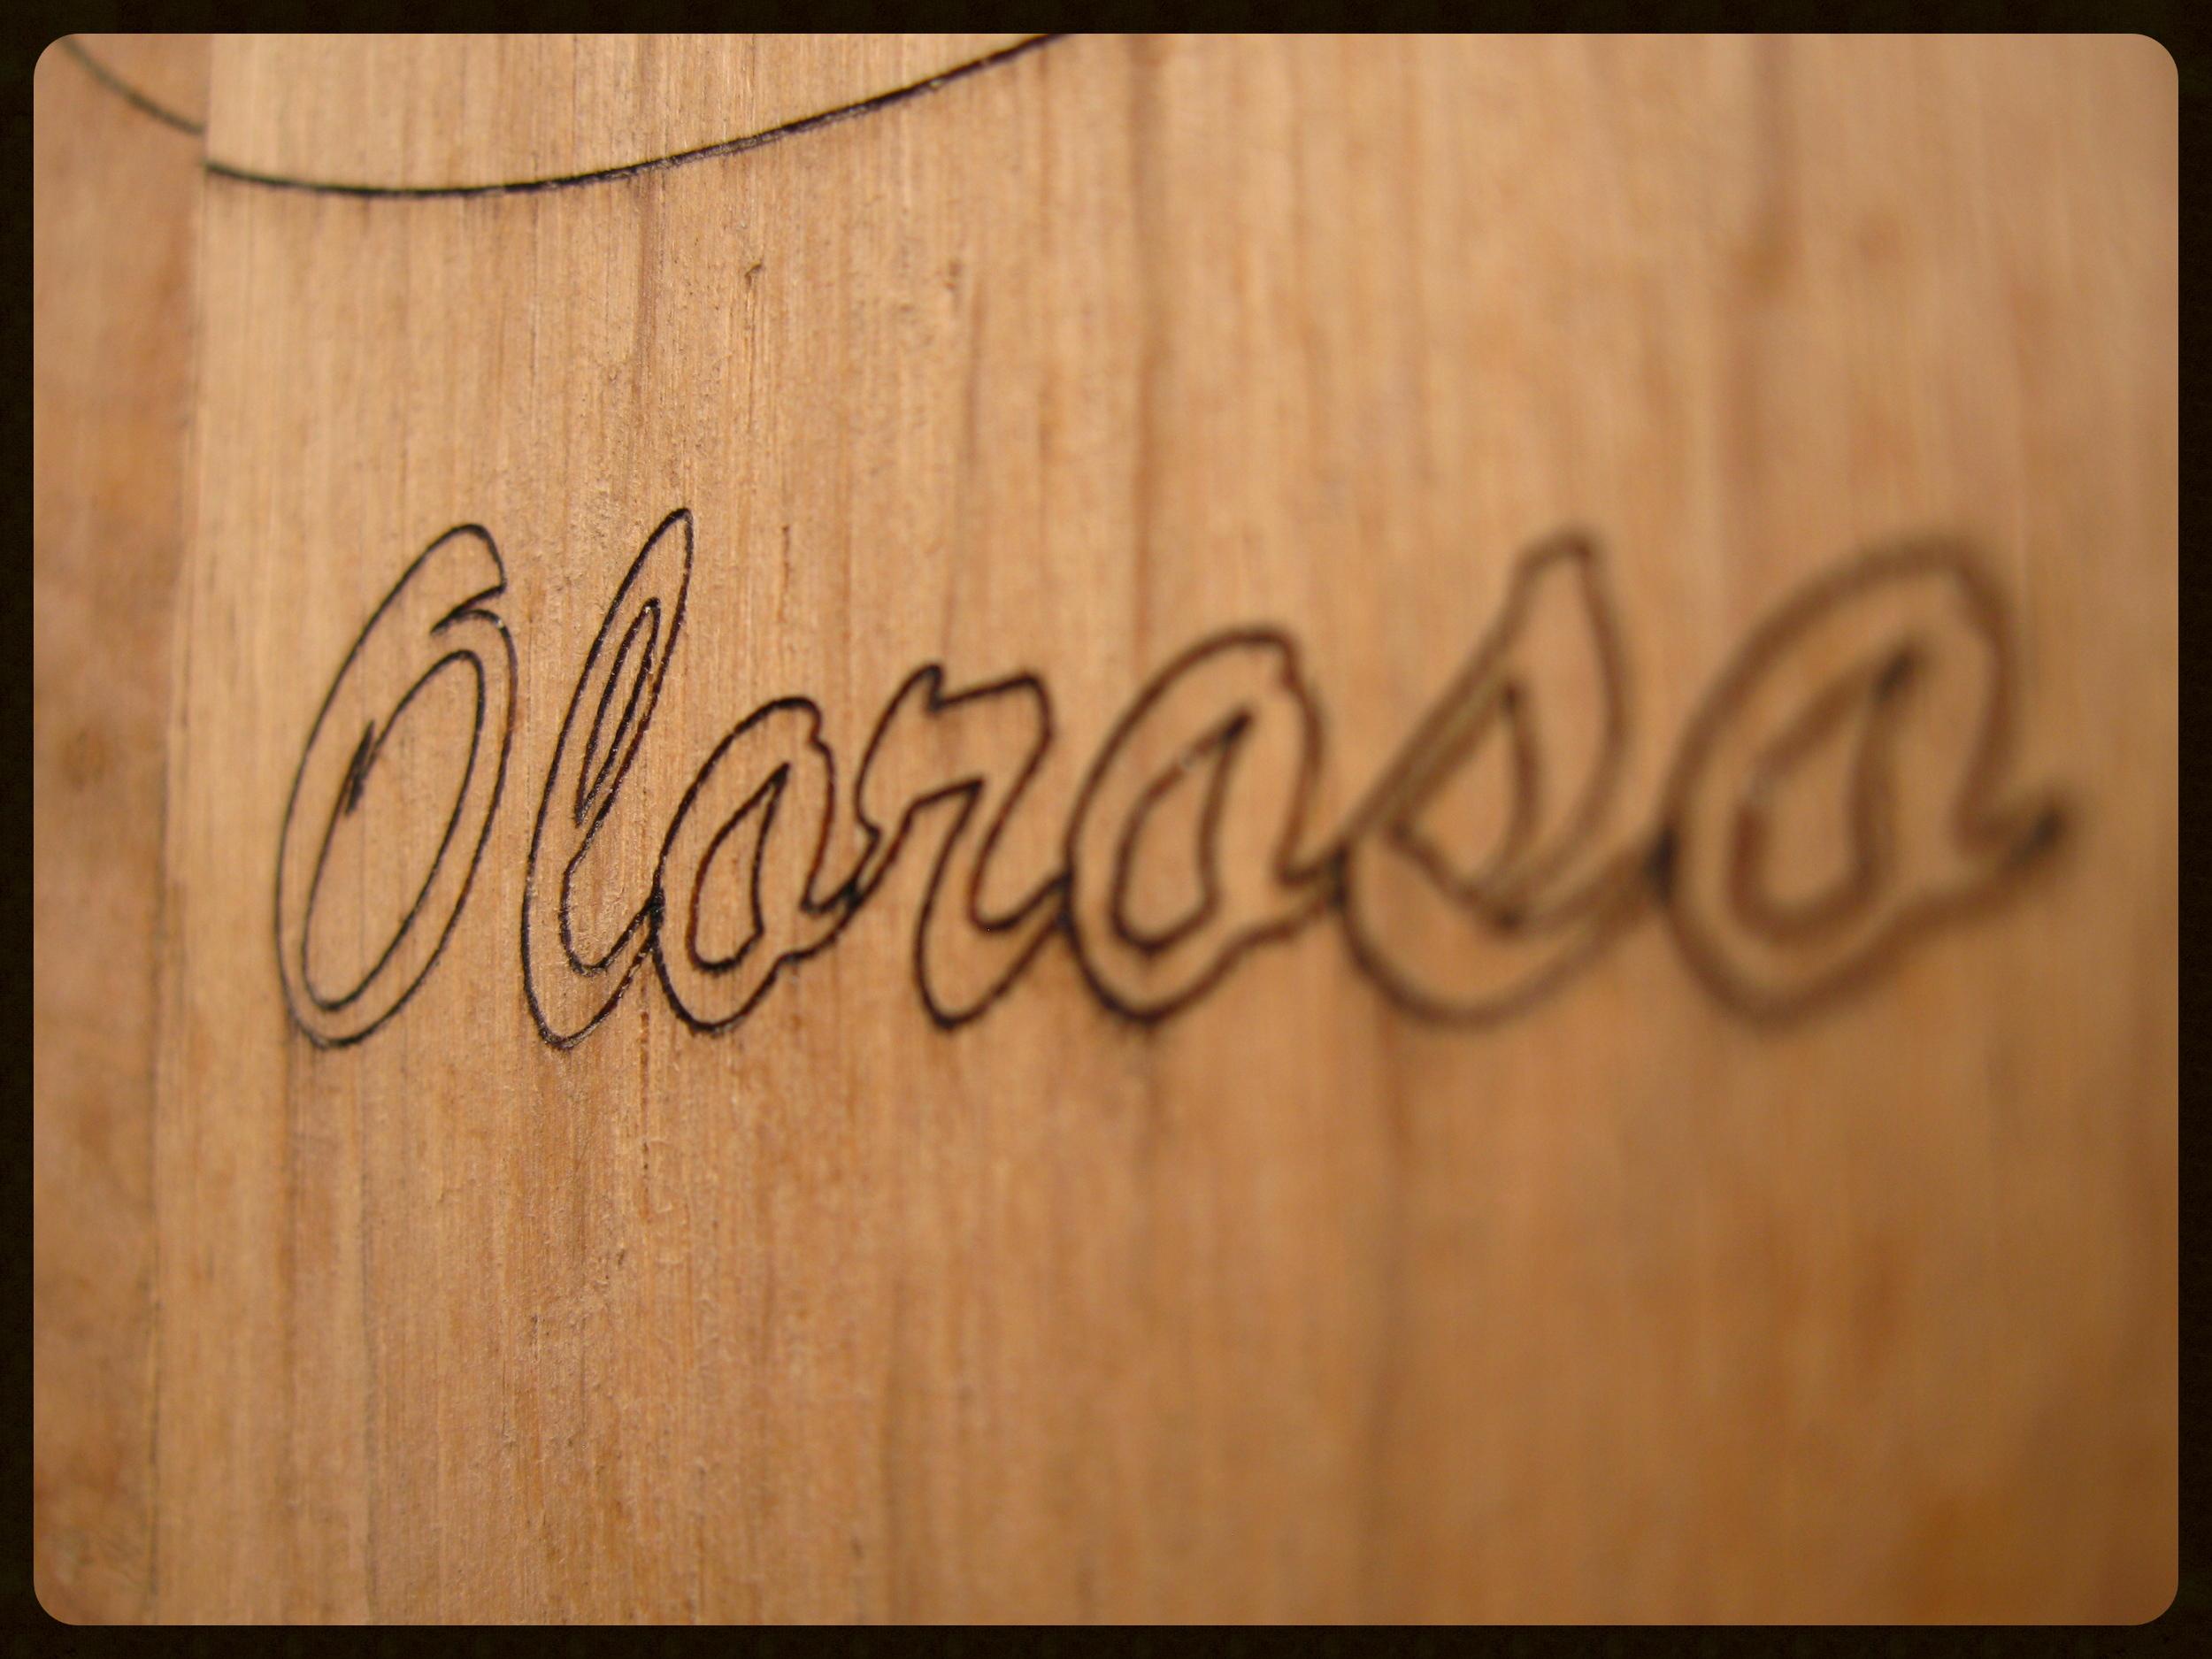 Oloroso 'Sherry Casks', just one of many added flavourings.